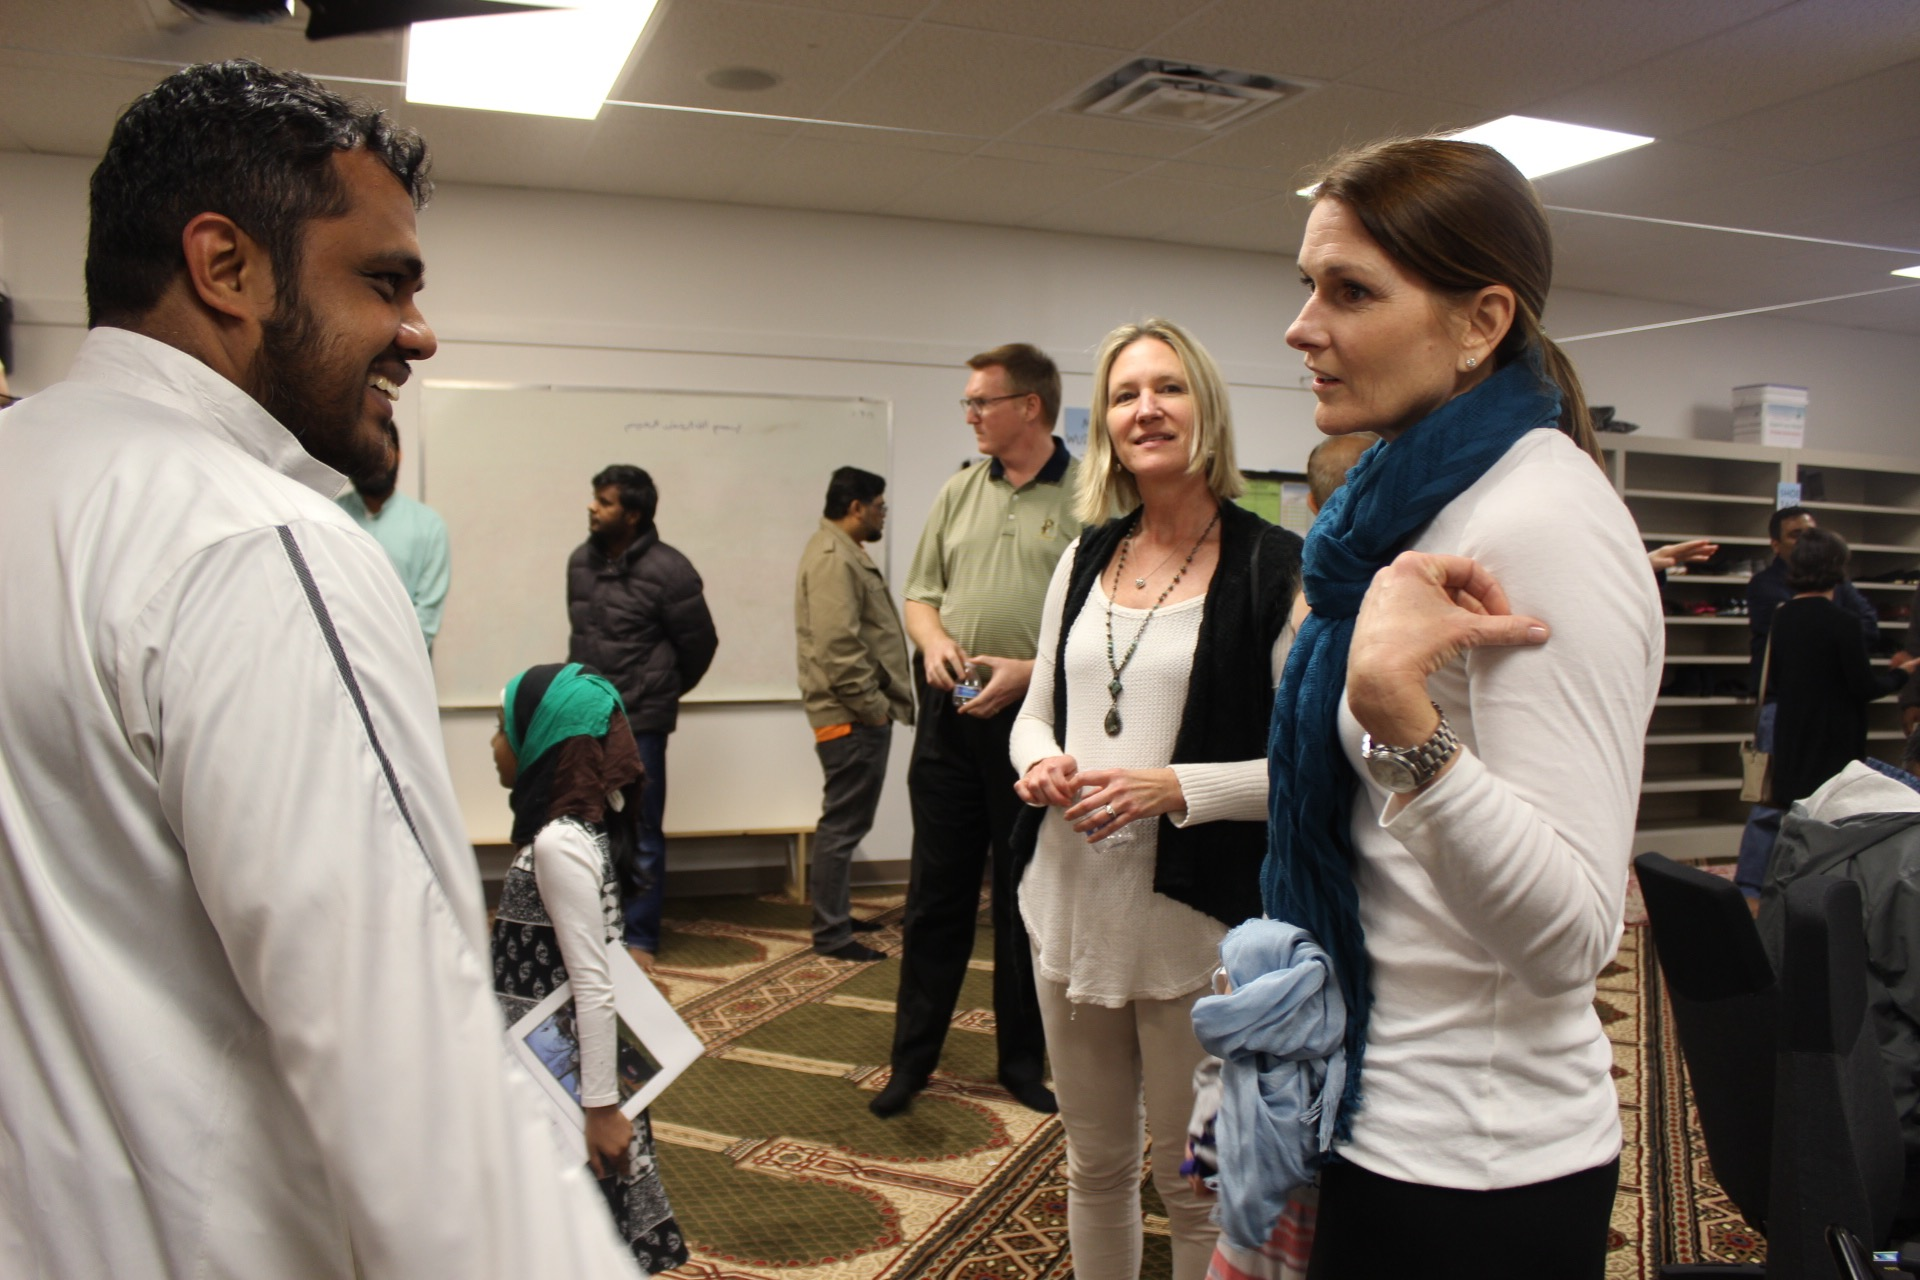 'Visit a Mosque Day' in Dunwoody brings cultures together